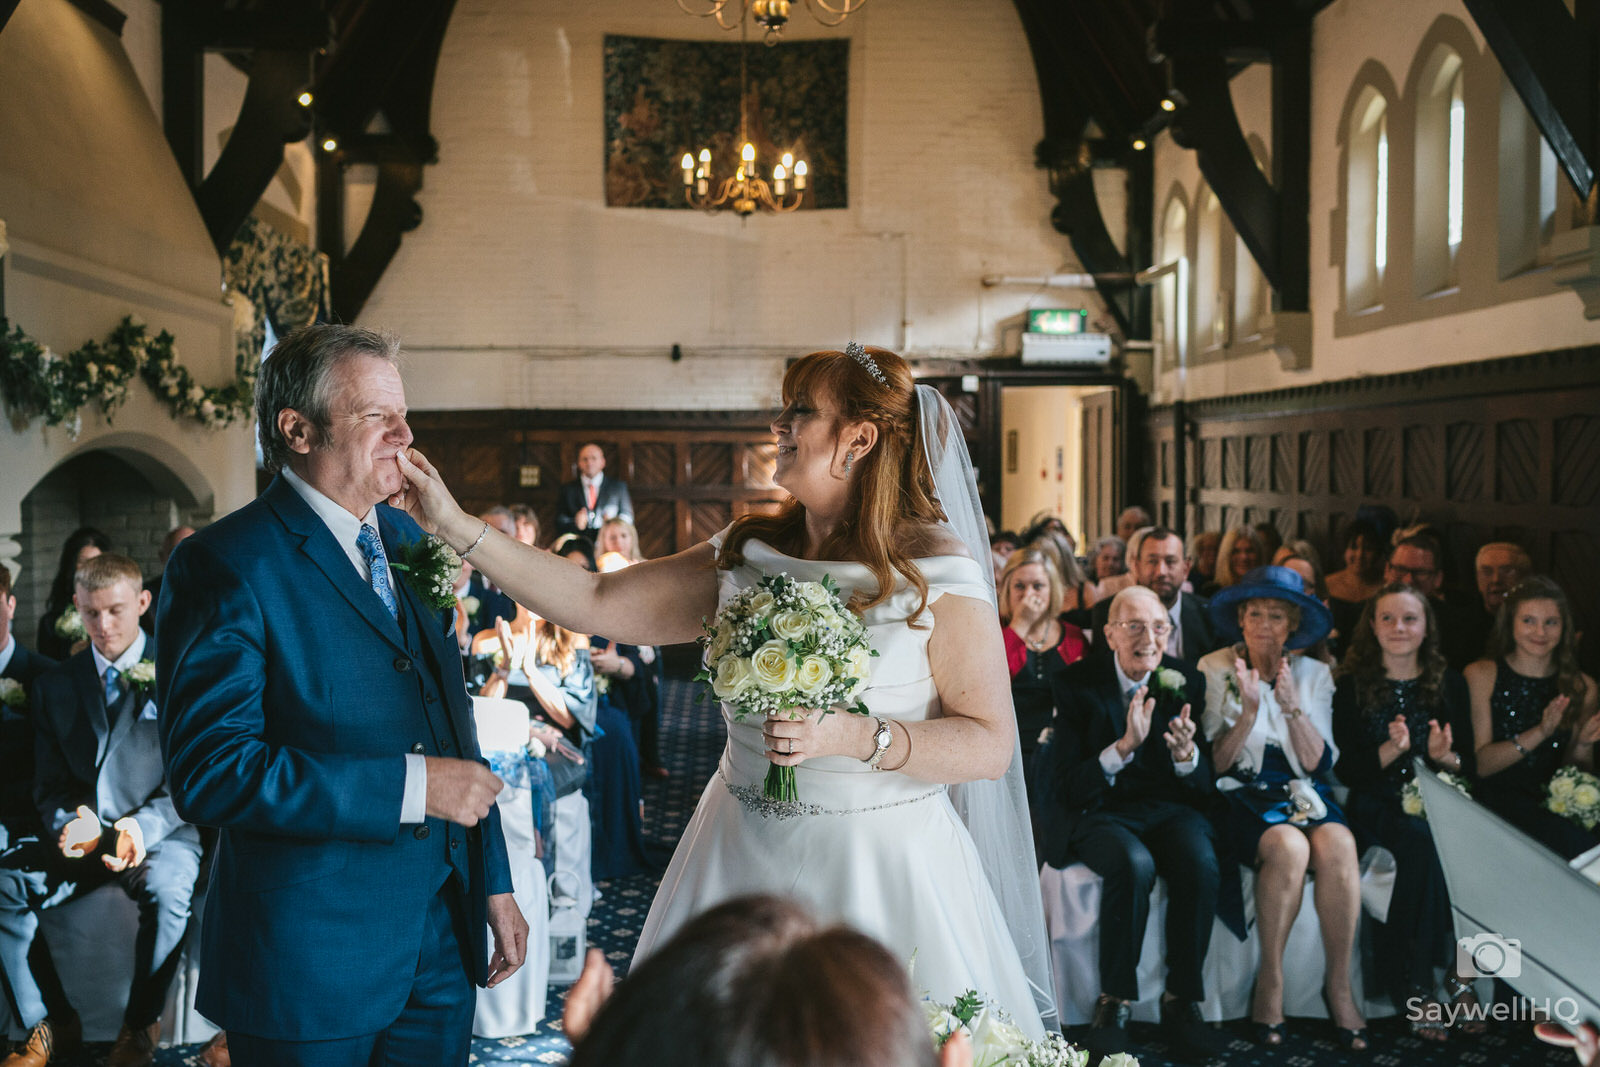 Bestwood Lodge wedding photography bride rubbing lipstick off the groom